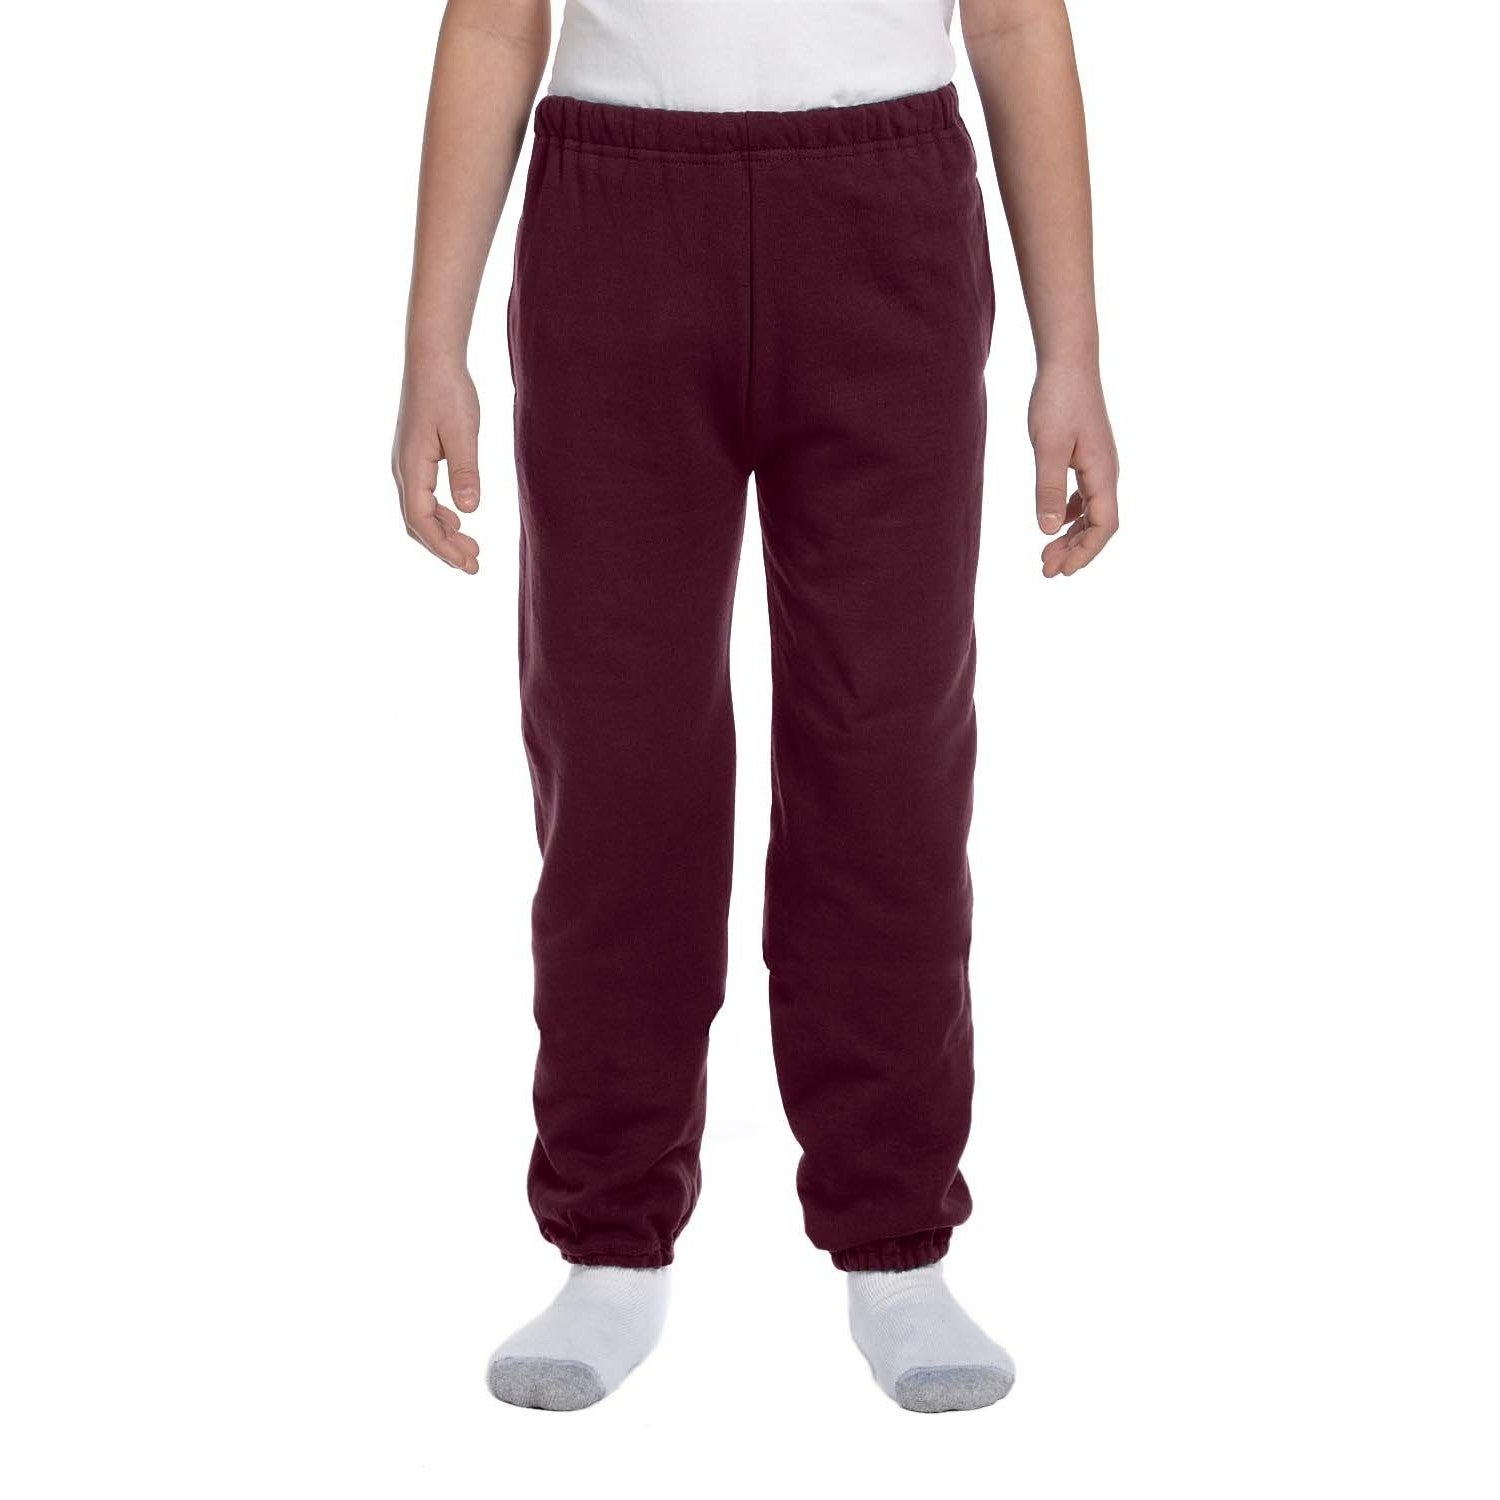 Super Sweats Youth Maroon Polyester Sweatpants With Pocke...